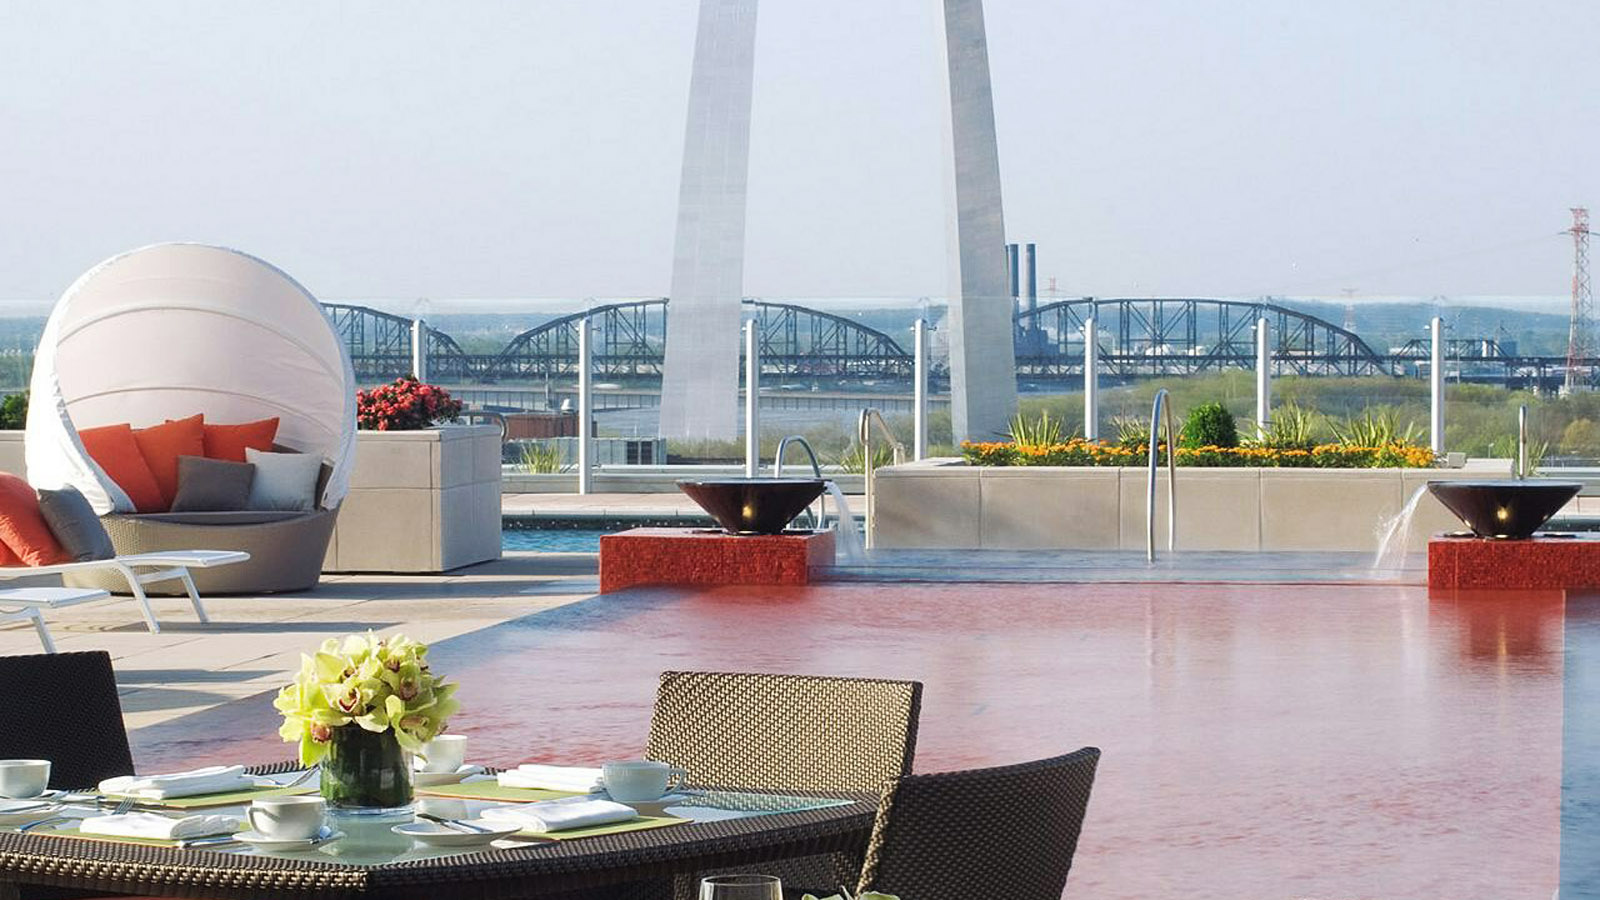 Sky Terrace Swimming Pool at Four Seasons Hotel St. Louis